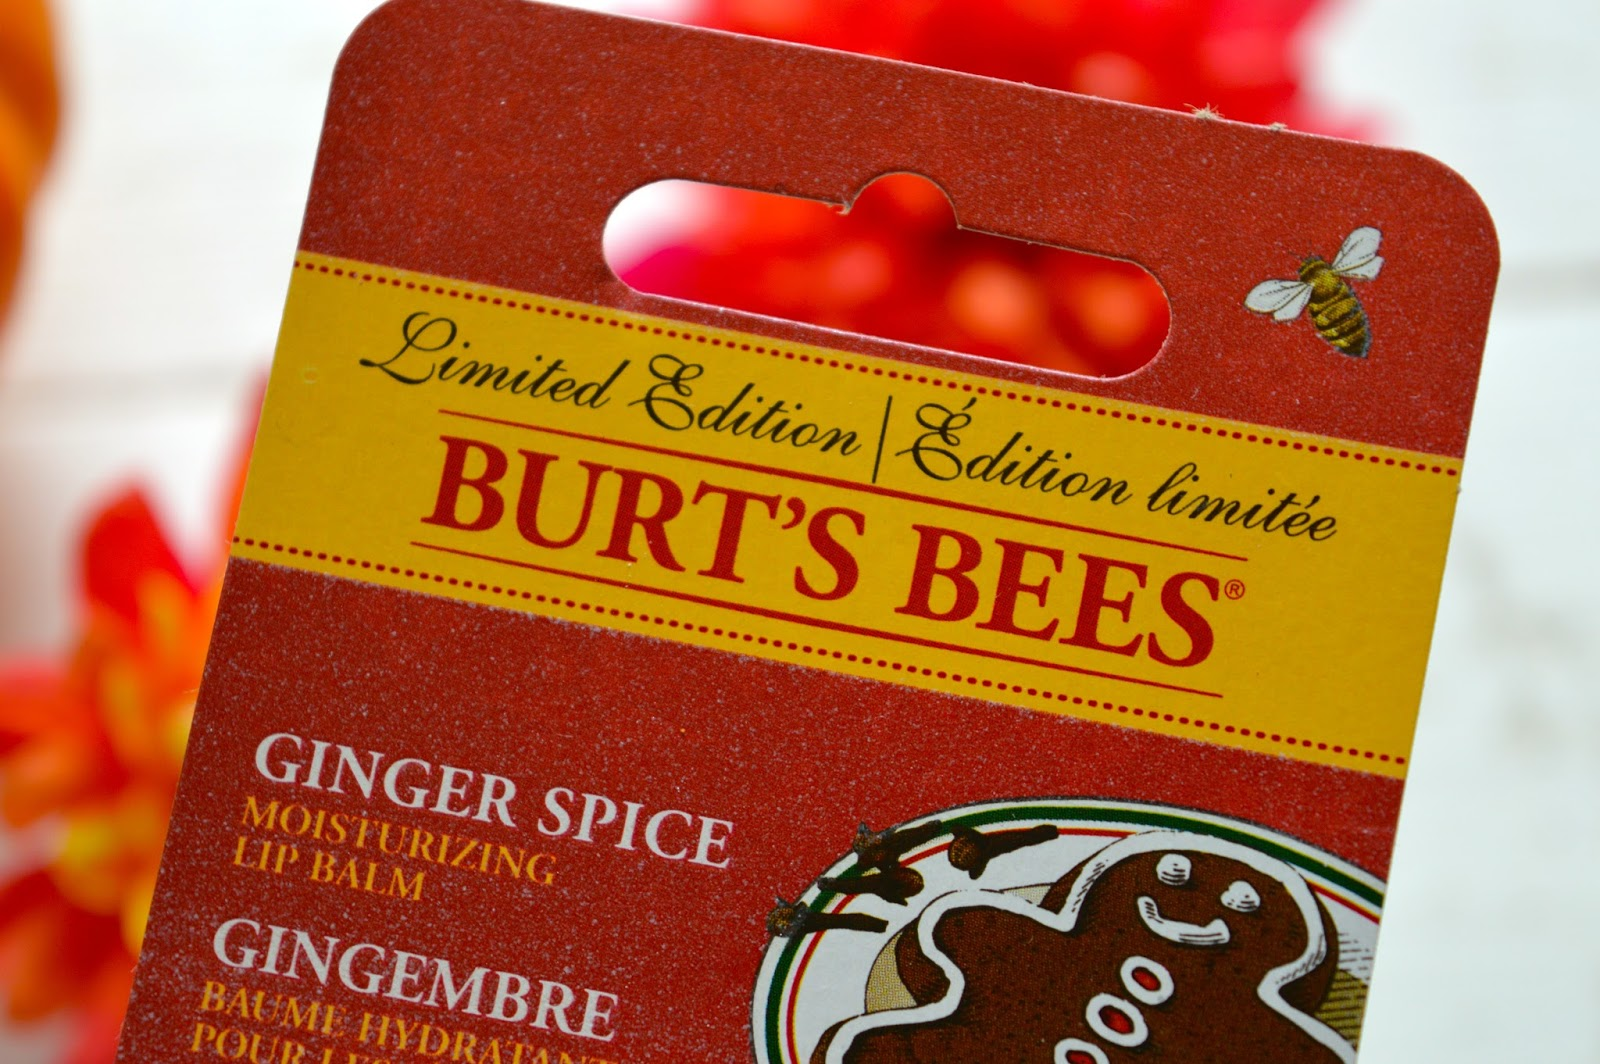 Burts Bees Ginger Spice lip balm, Burts Bees lip balm, ginger lip balm, Dalry Rose blog, UK beauty blog, UK beauty bloggers